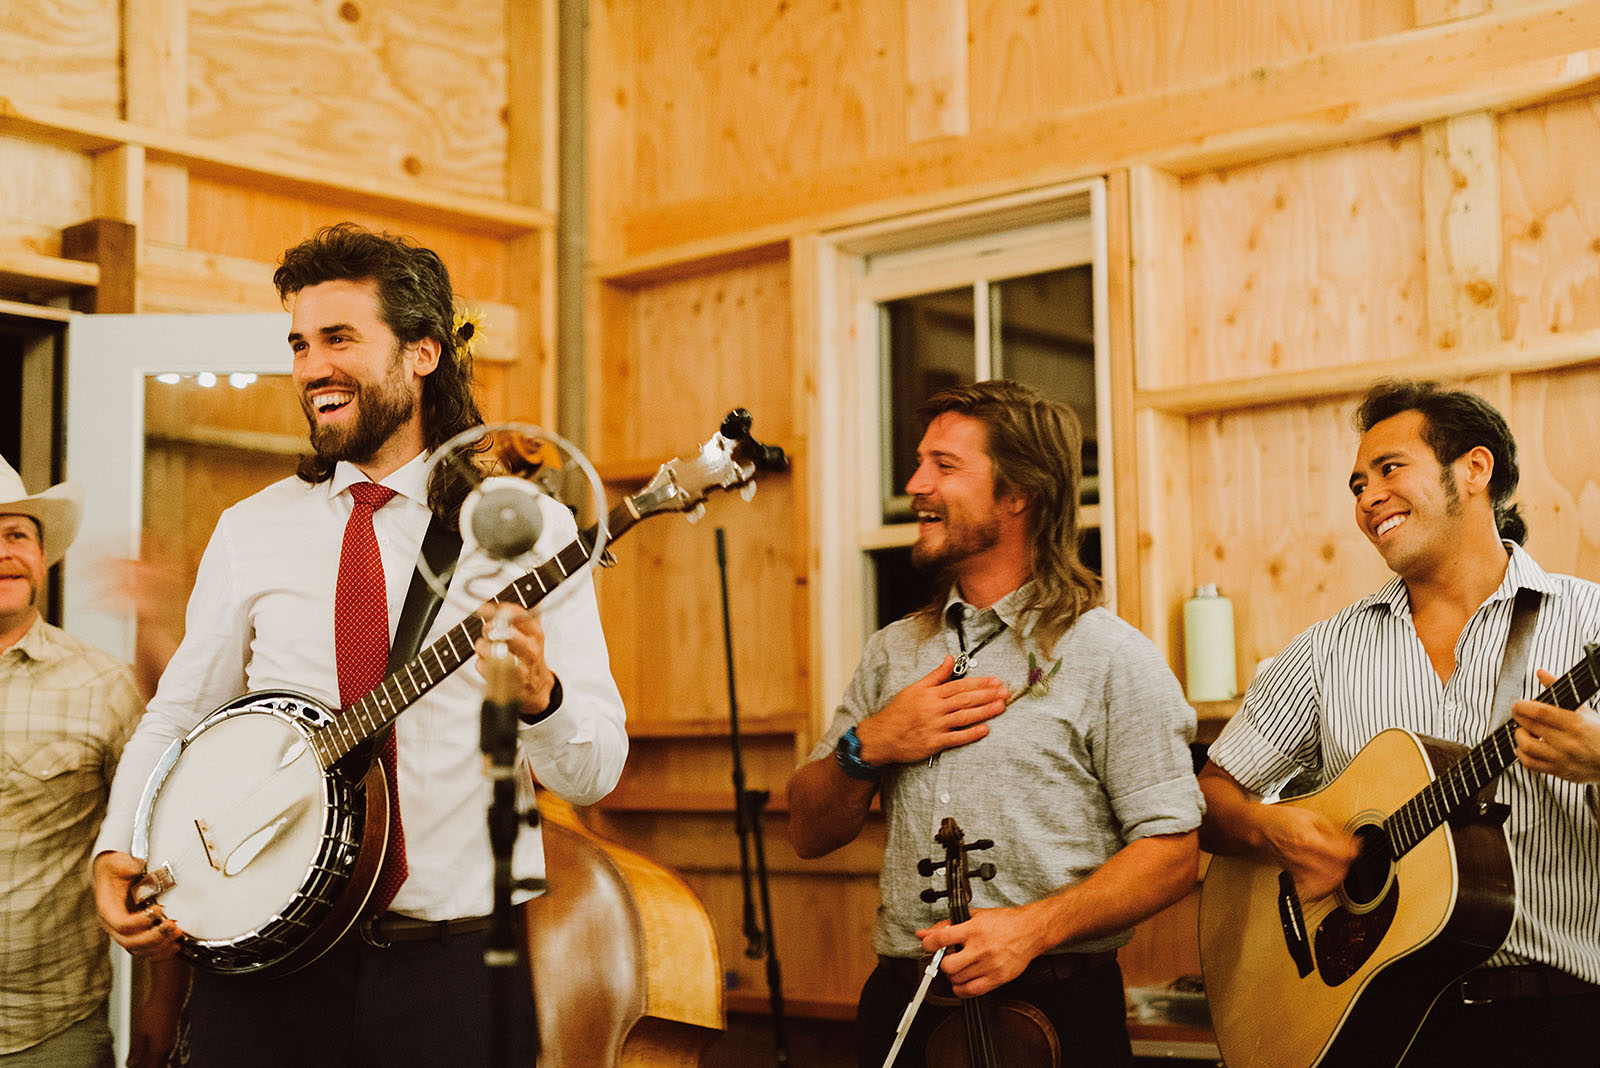 Groom joining the bluegrass musicians | Sauvie Island Wedding